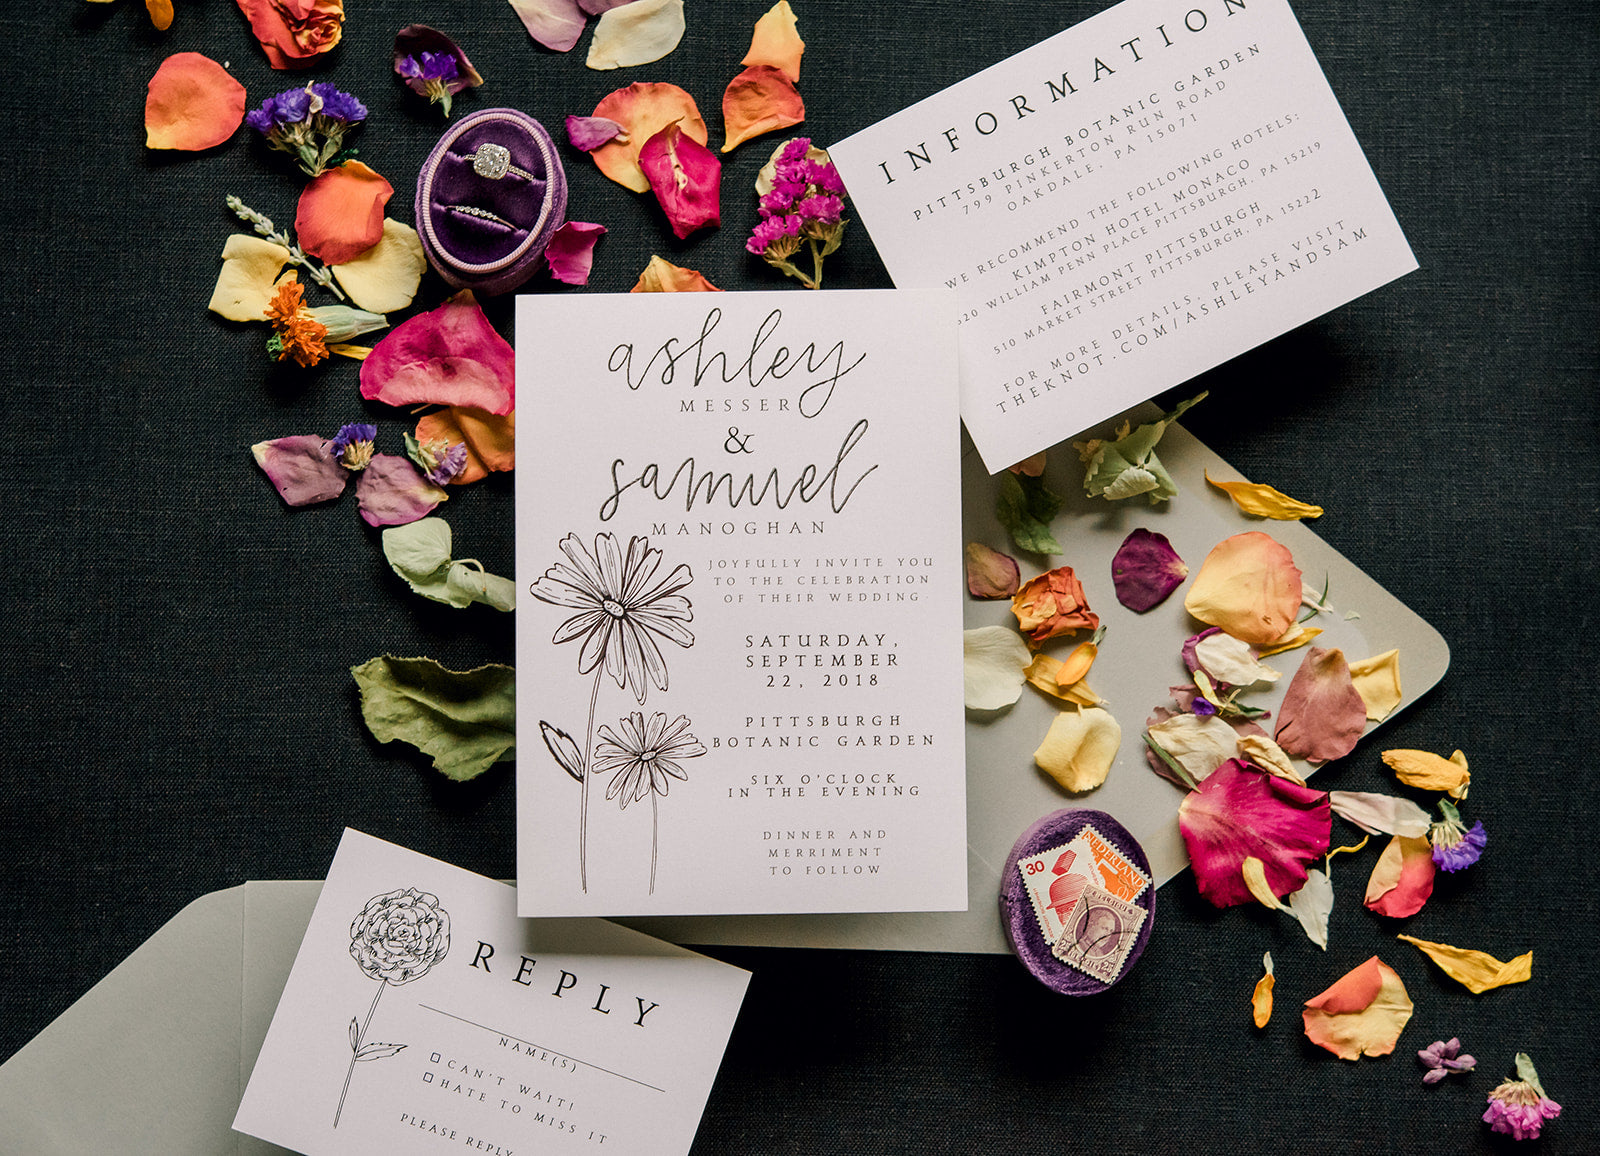 custom wedding stationery artful wedding stationery east coast weddings midwest weddings pennsylvania wedding stationery oh joyful day pittsburgh weddings